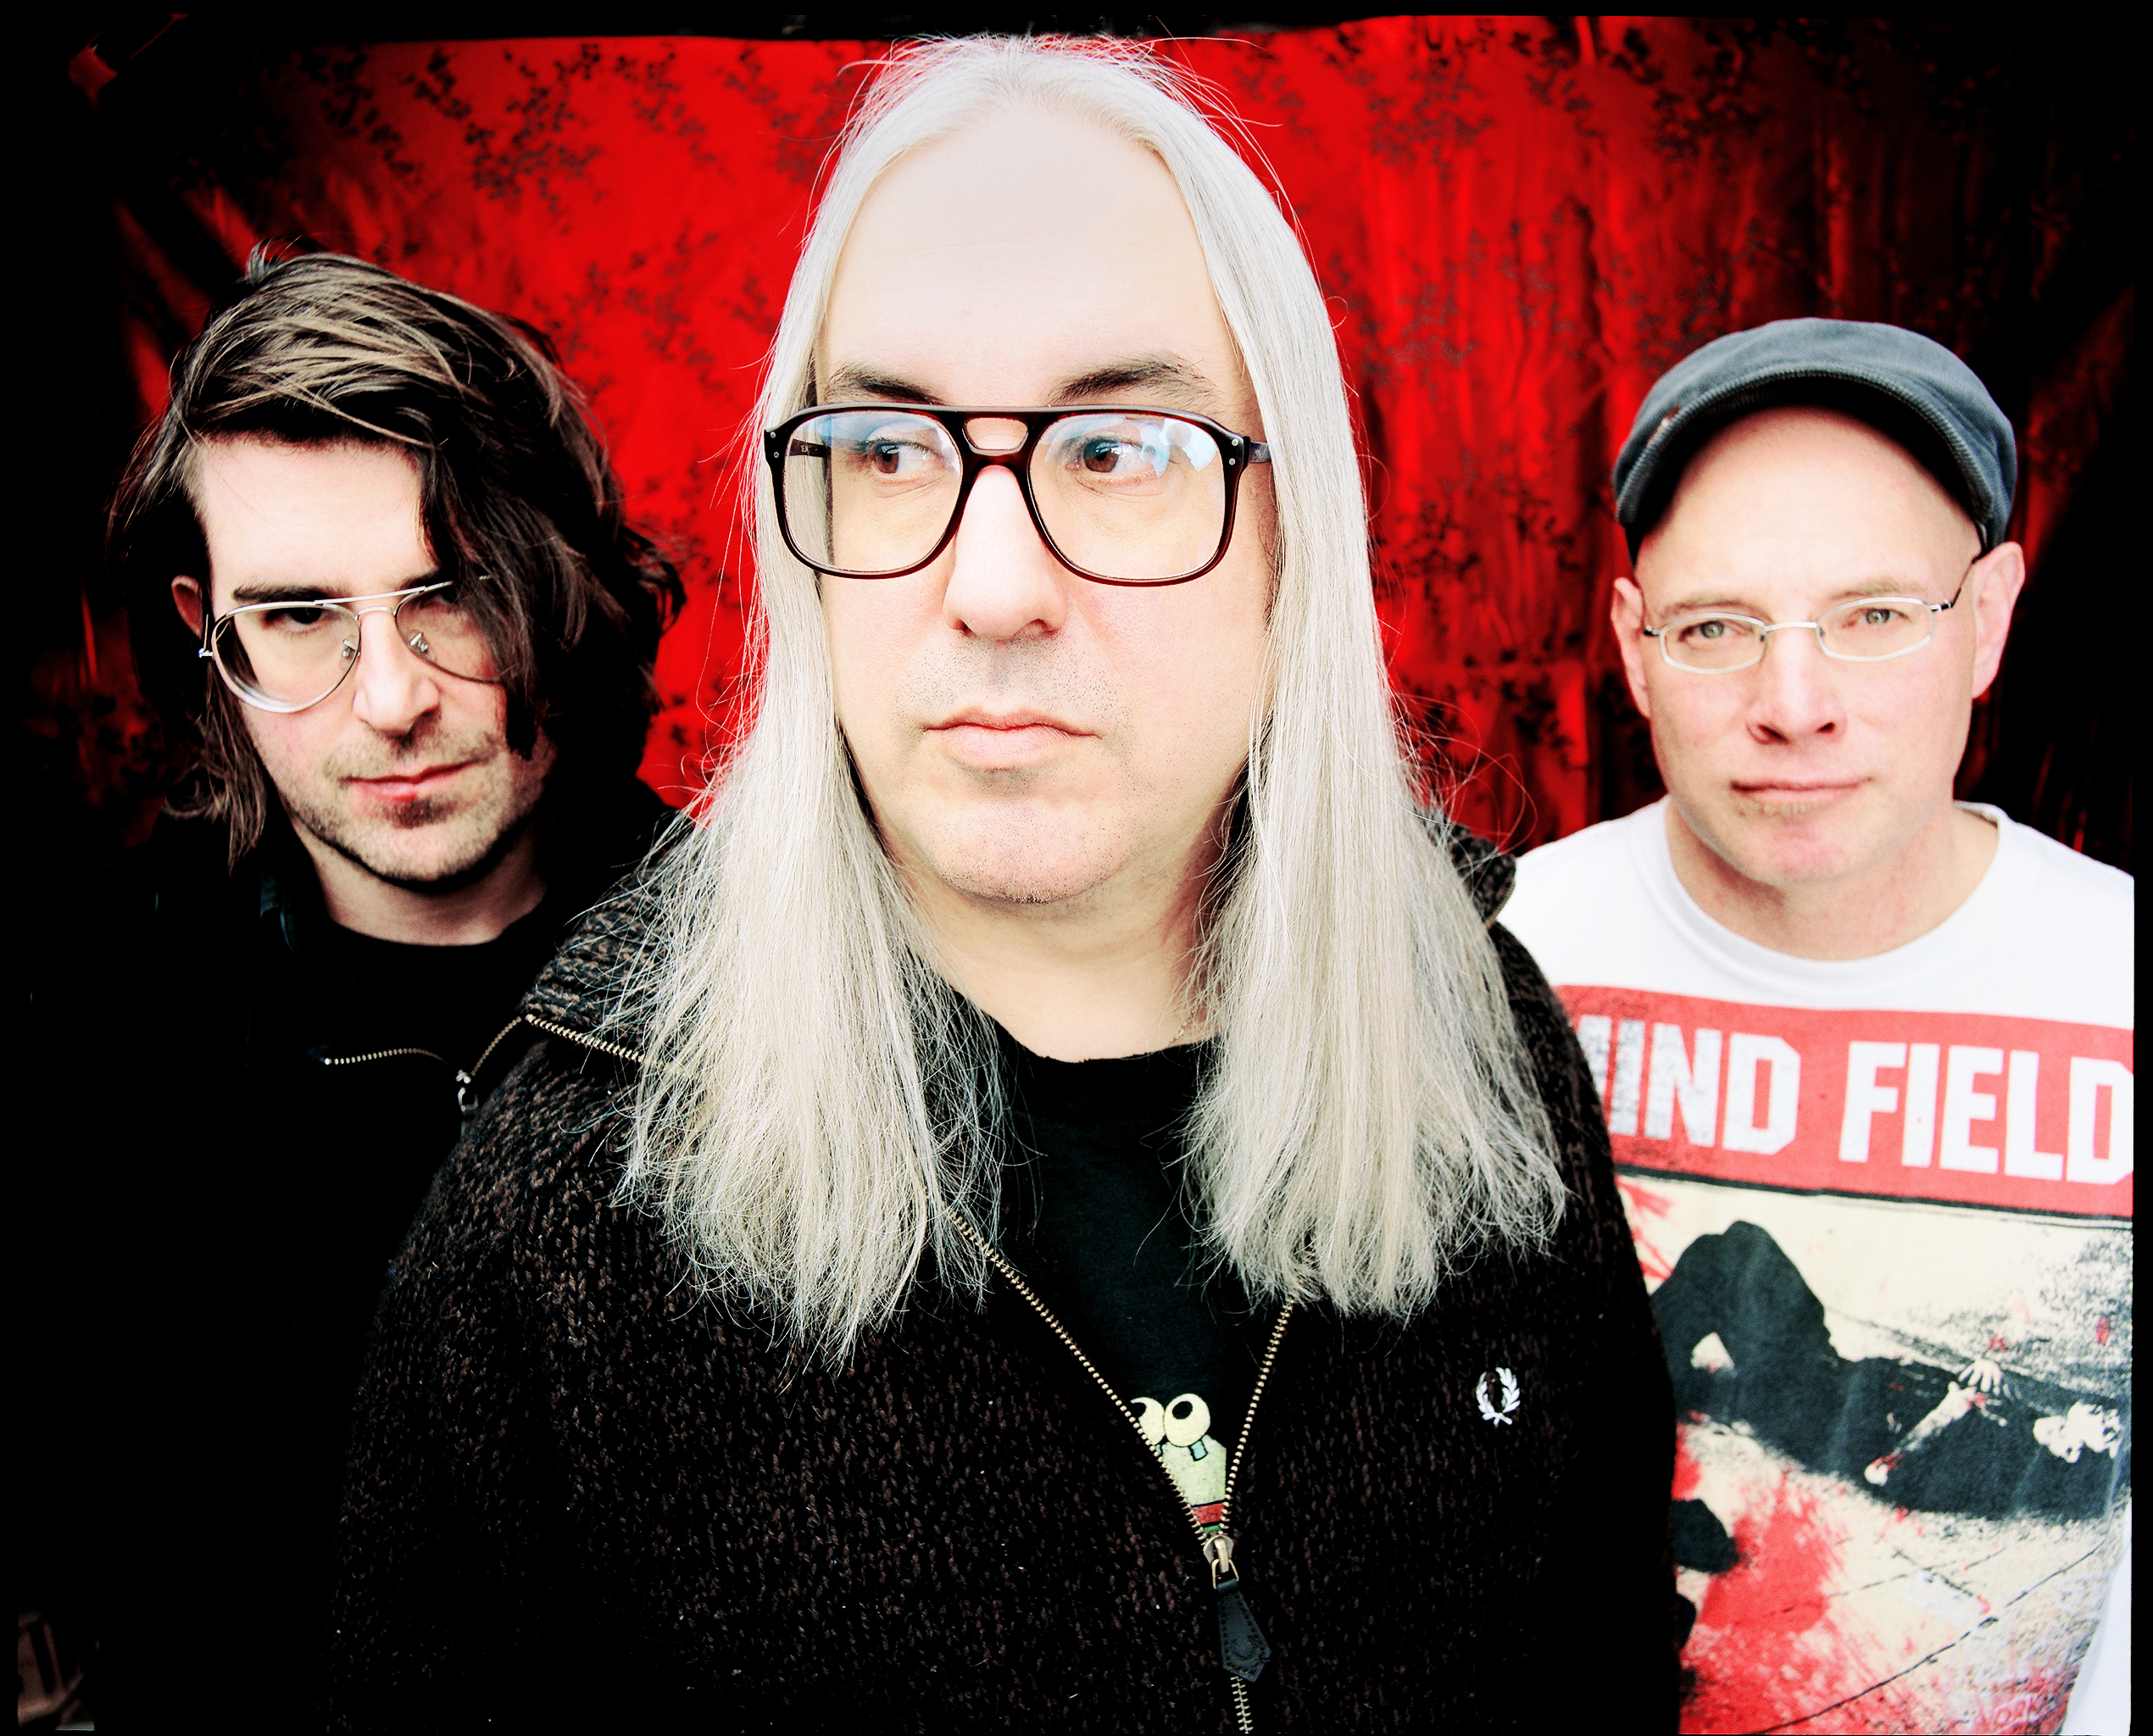 Download free MP3 of new Dinosaur Jr track 'I Don't Want You To Know'